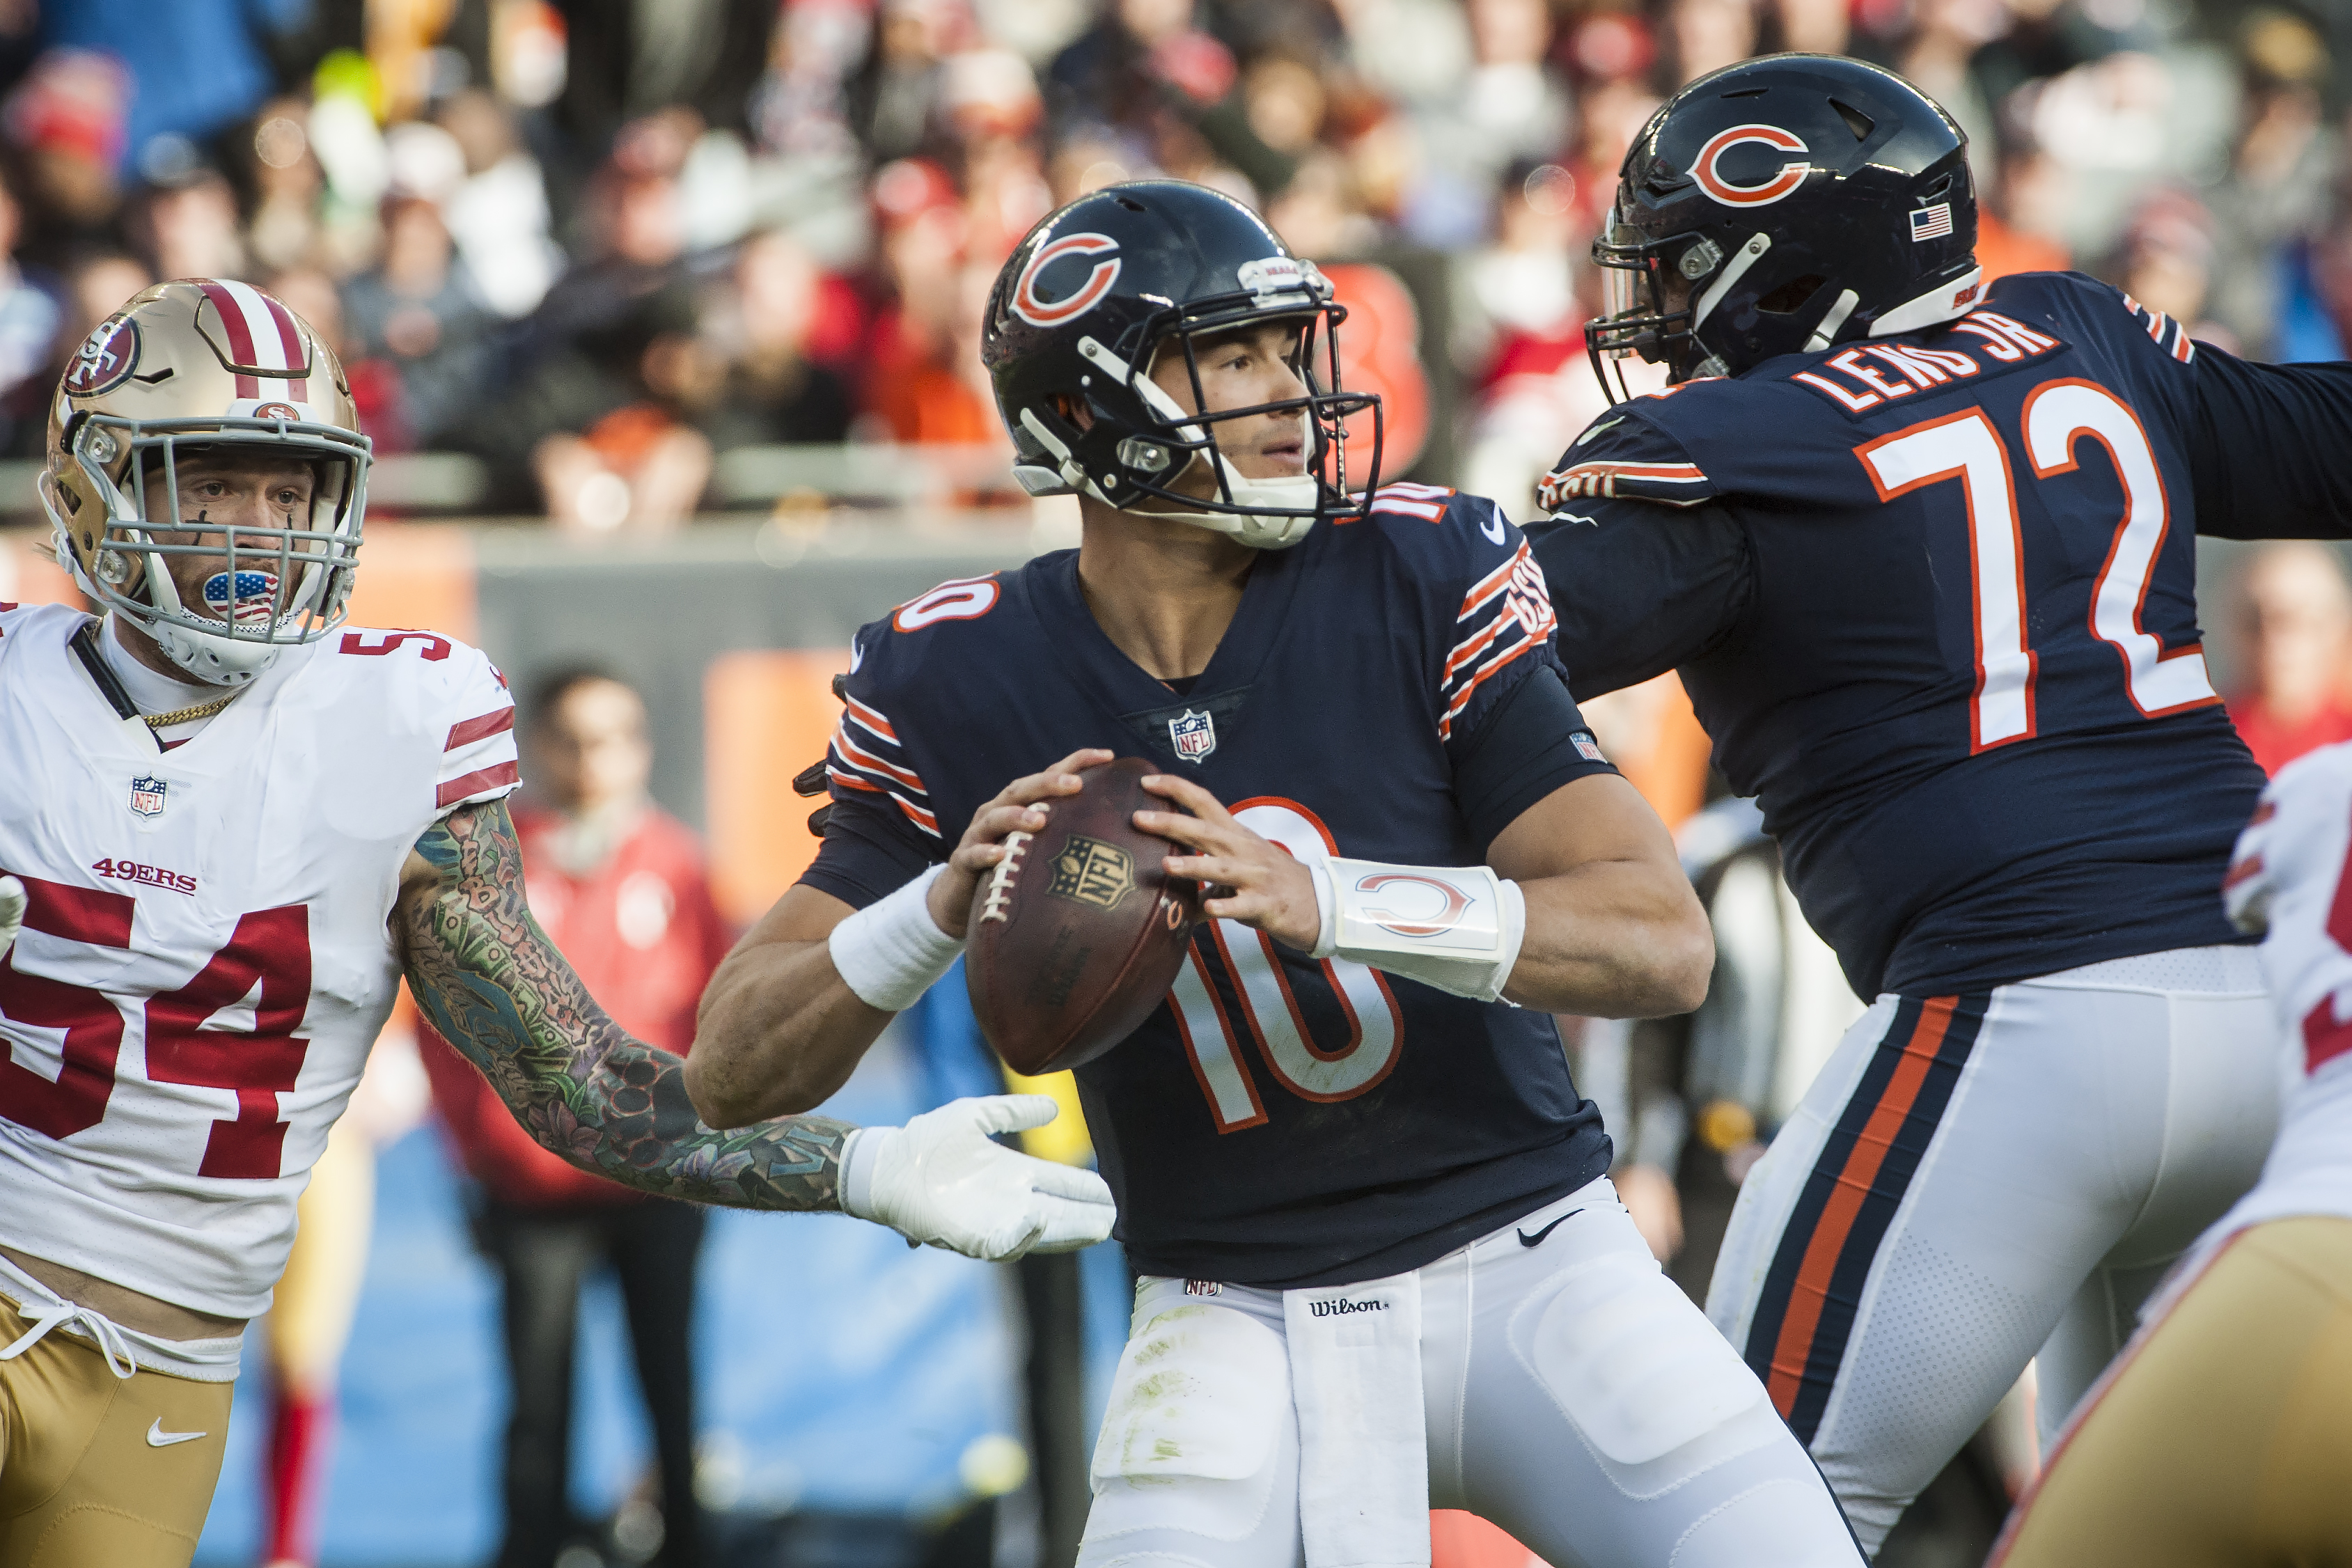 Chicago Bears Quarterback Mitch Trubisky #10 looks to pass the ball during the fourth quarter against the San Francisco 49ers at Soldier Field, Sunday, Dec. 3, 2017.